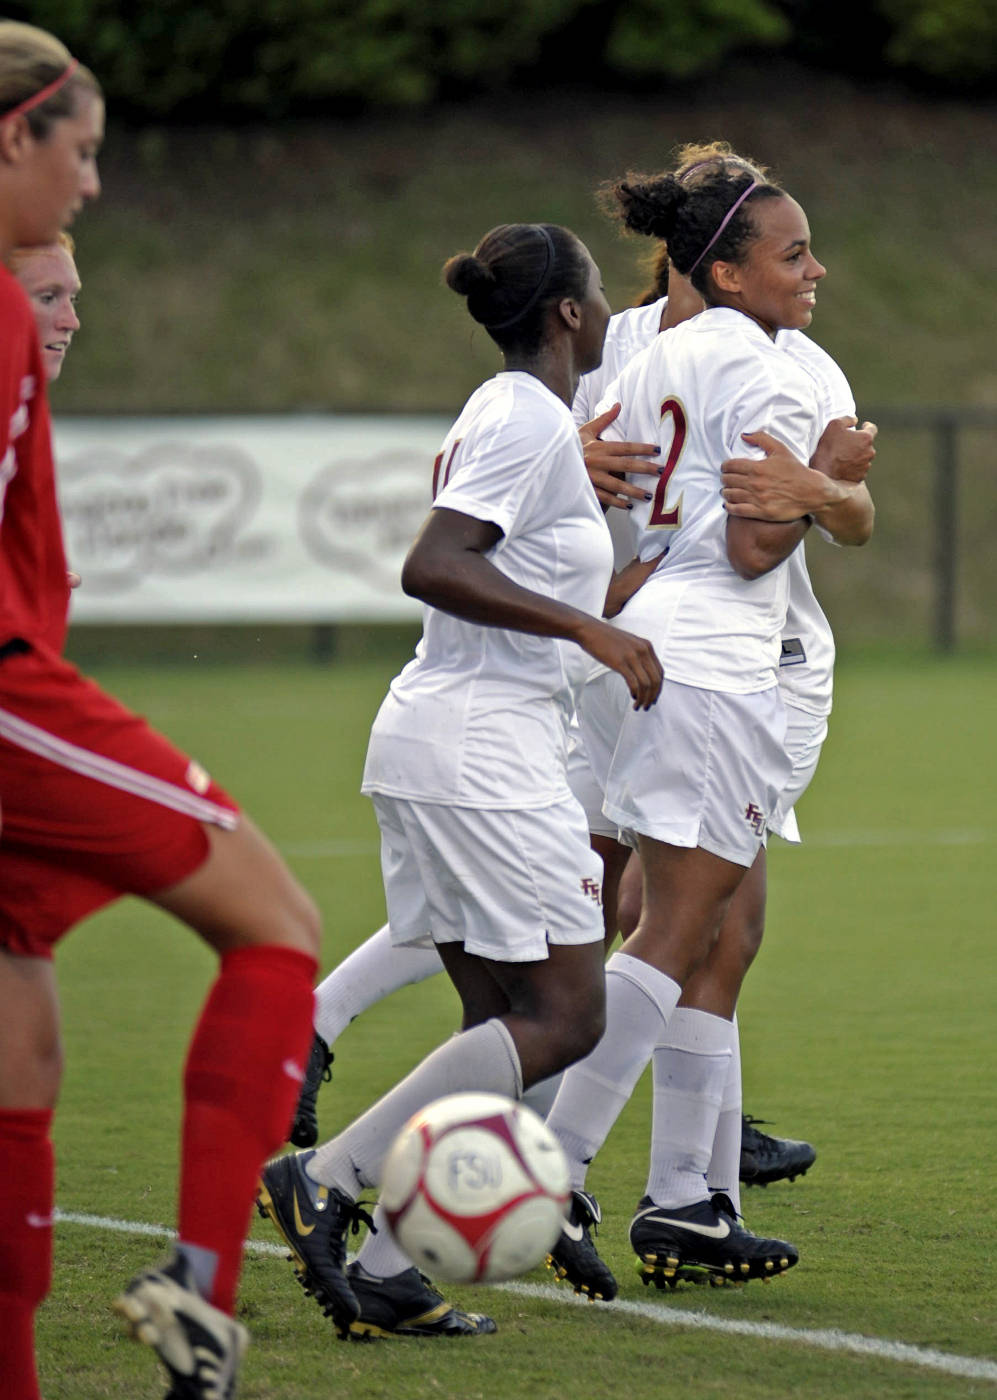 The Seminoles celebrate after a goal.